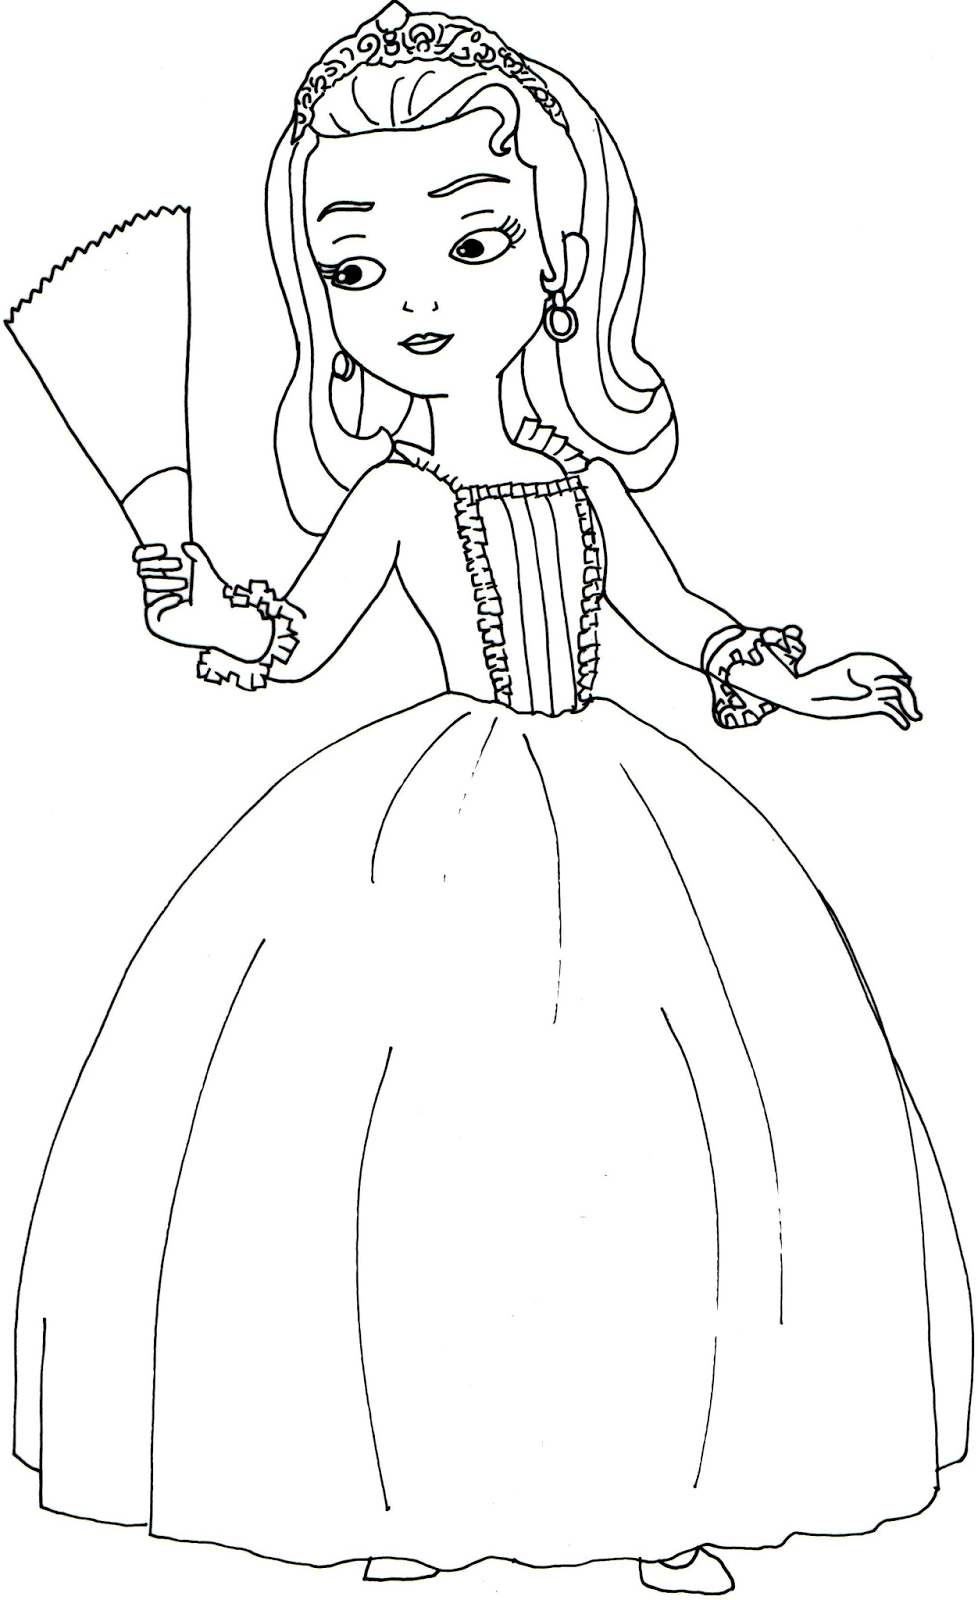 Ausmalbilder Prinzessin Sofia : Sofia Coloring Pages Princess Sofia The First Coloring Pages